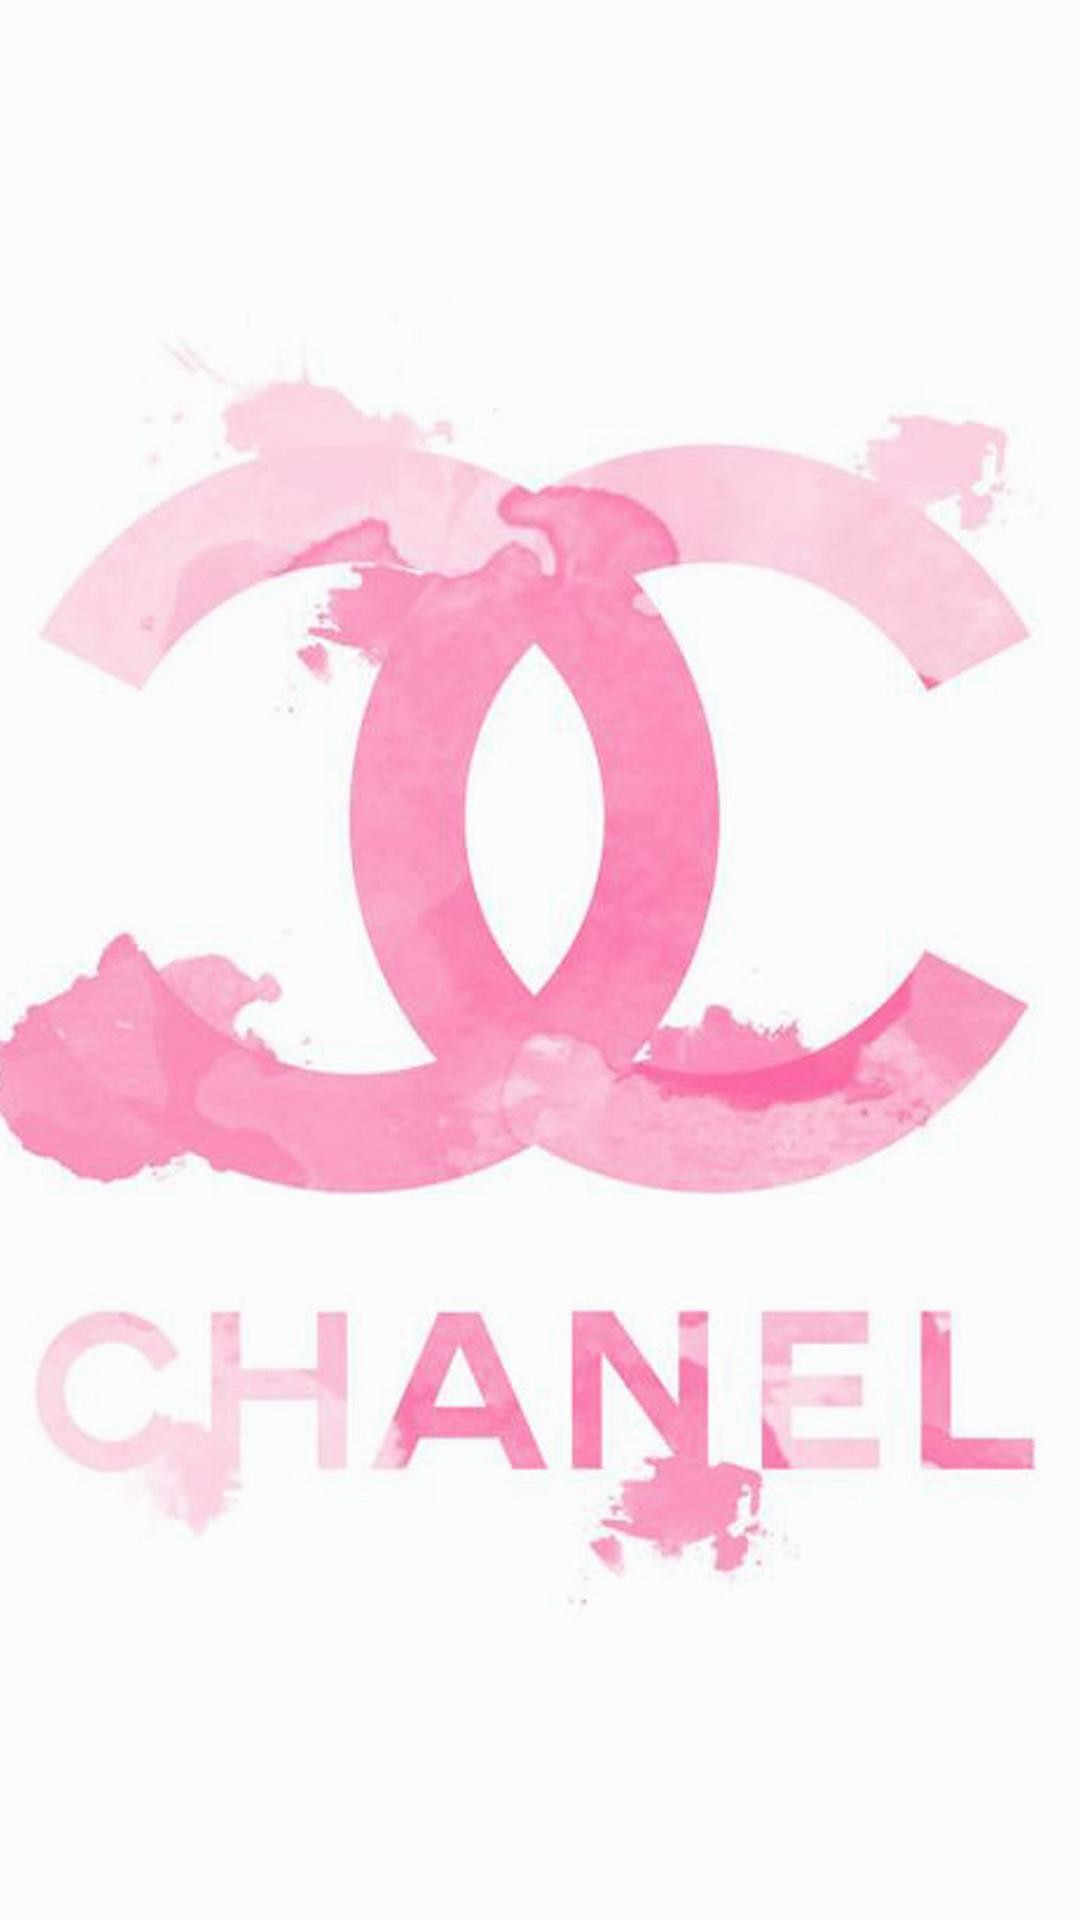 Chanel Wallpapers HD (70+ images)